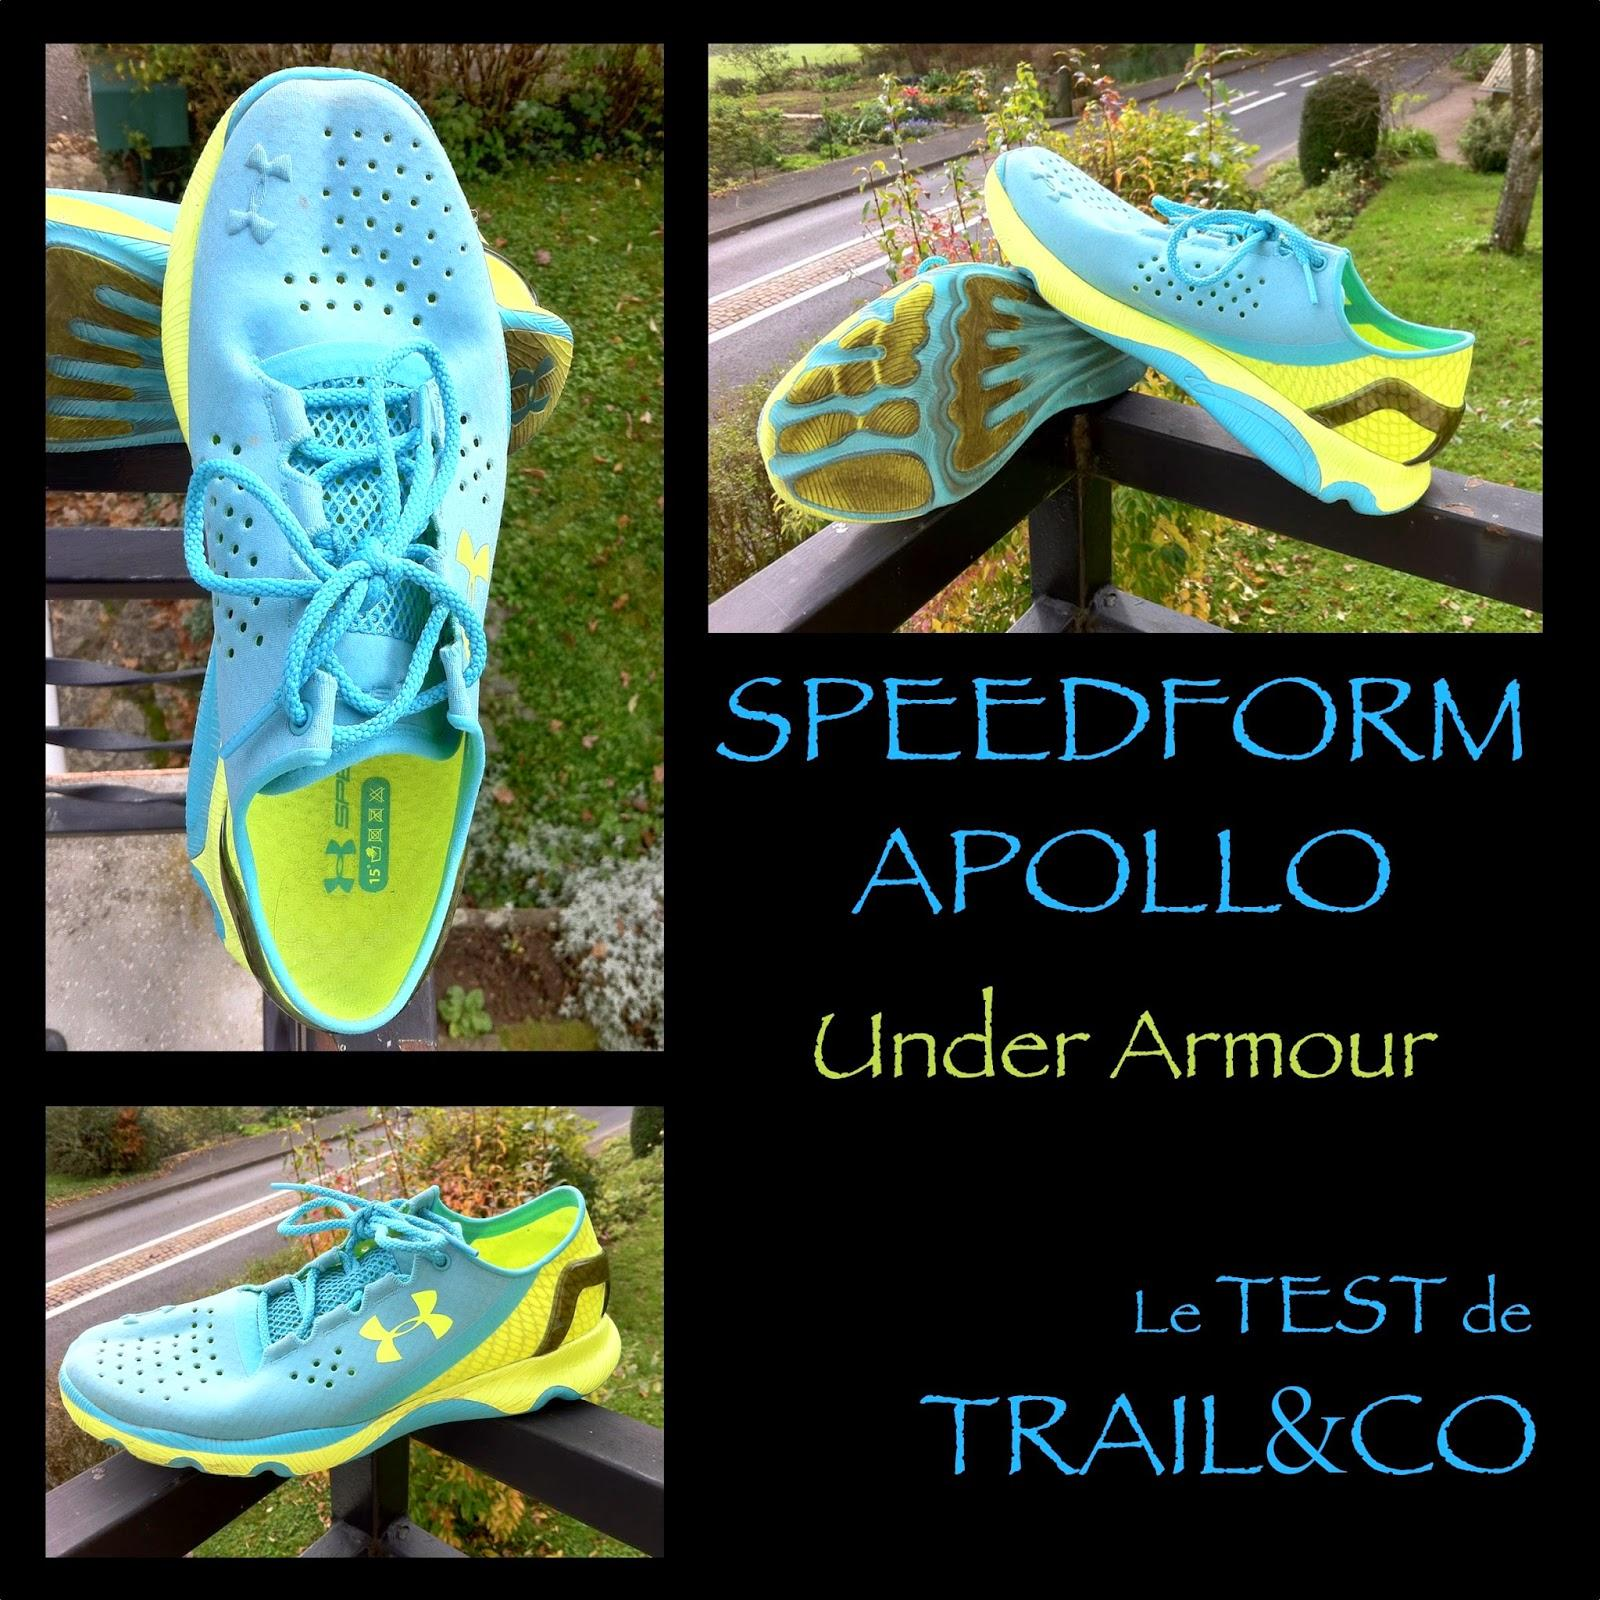 Test des SPEEDFORM APOLLO d'Under Armour